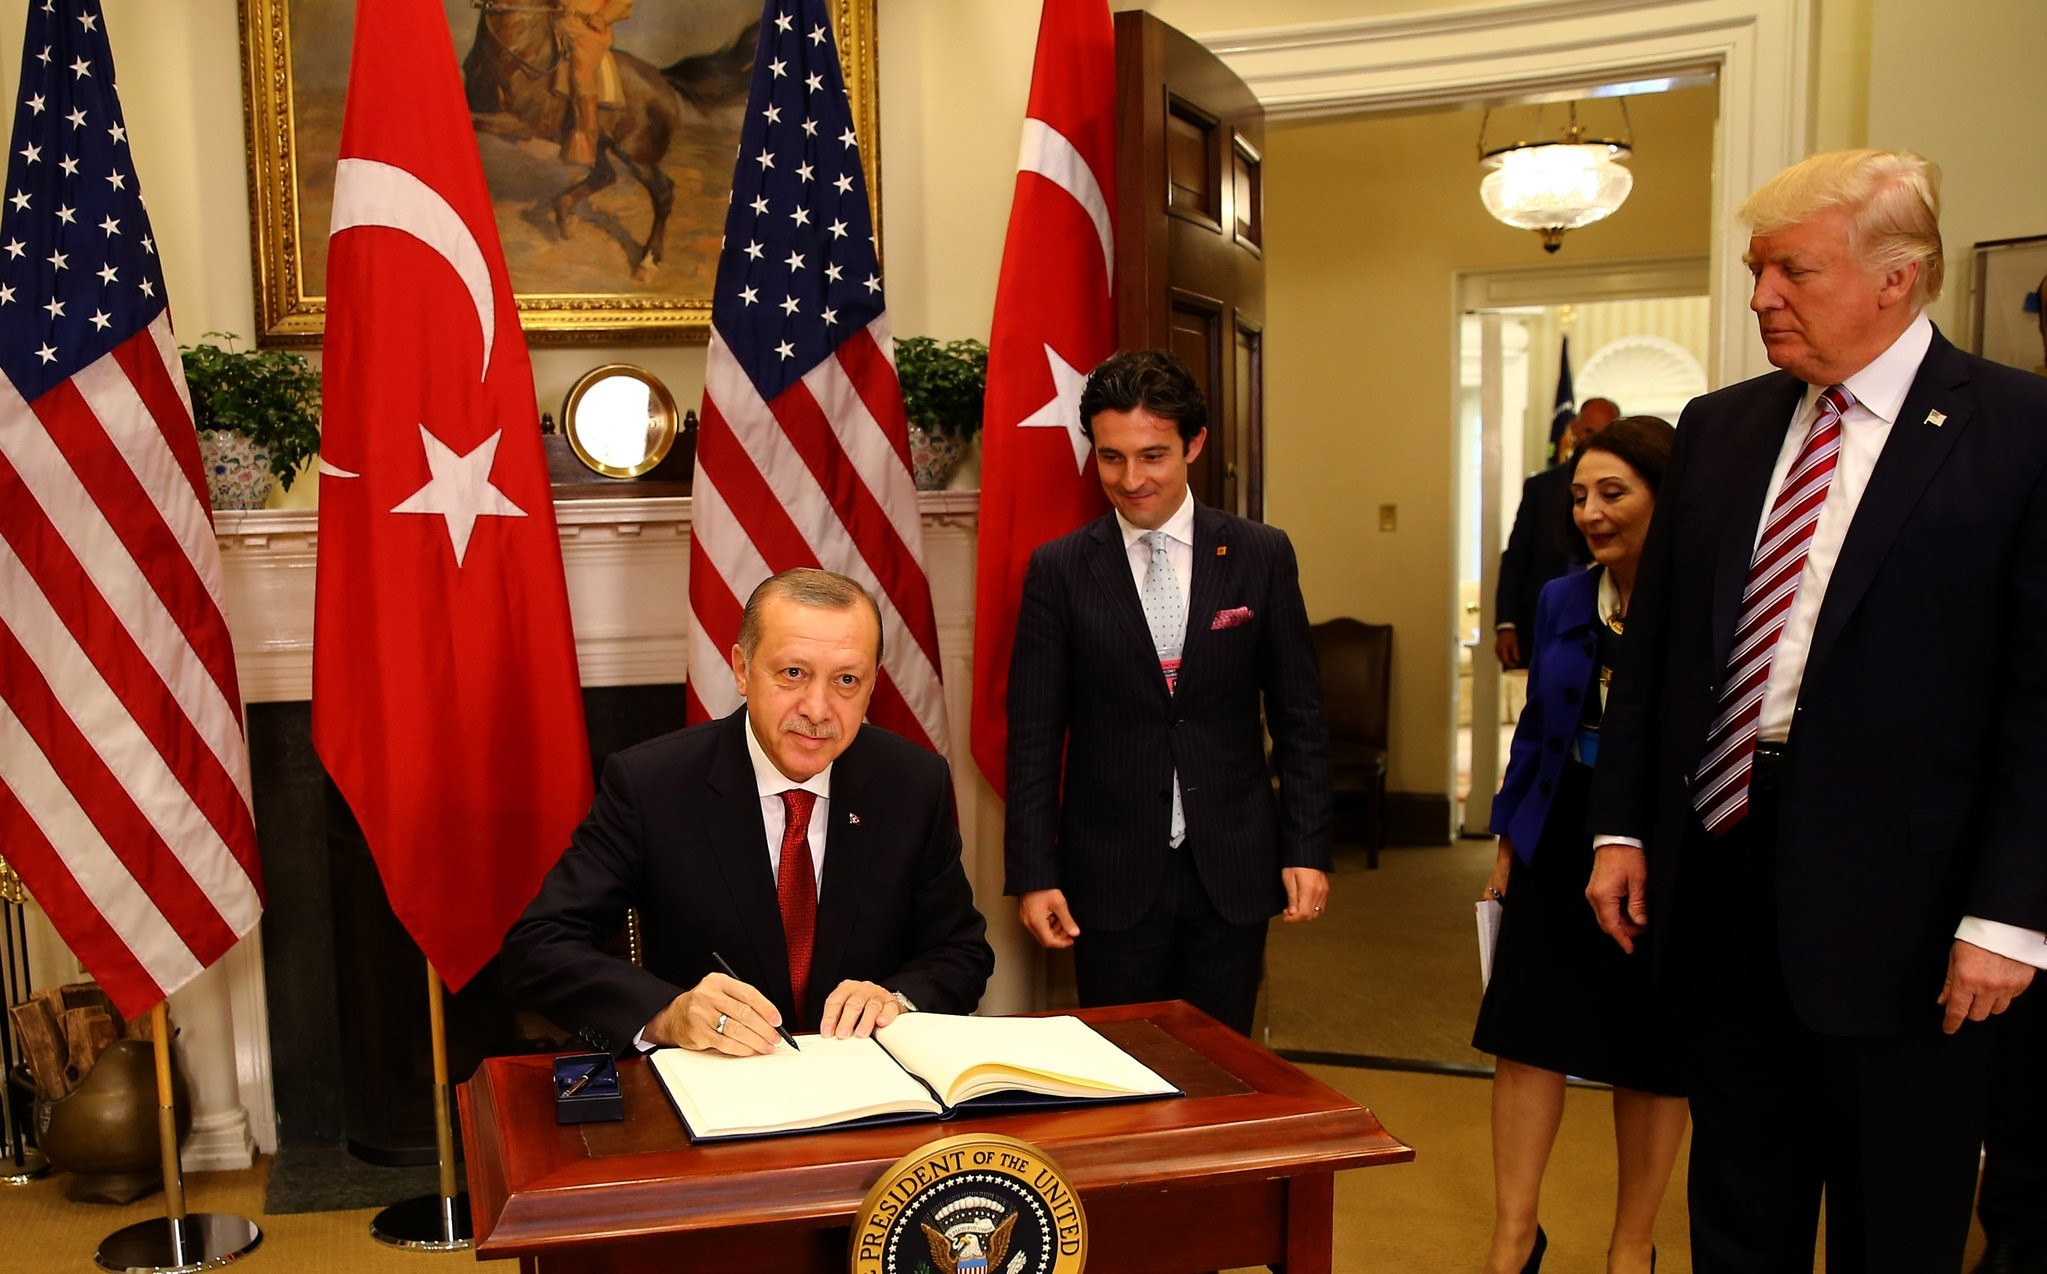 President Recep Tayyip Erdou011fan (L) signs a book of honor during his visit to the U.S. as President Donald Trump, first on the right, watches the ceremony, Washington, May 16, 2017.